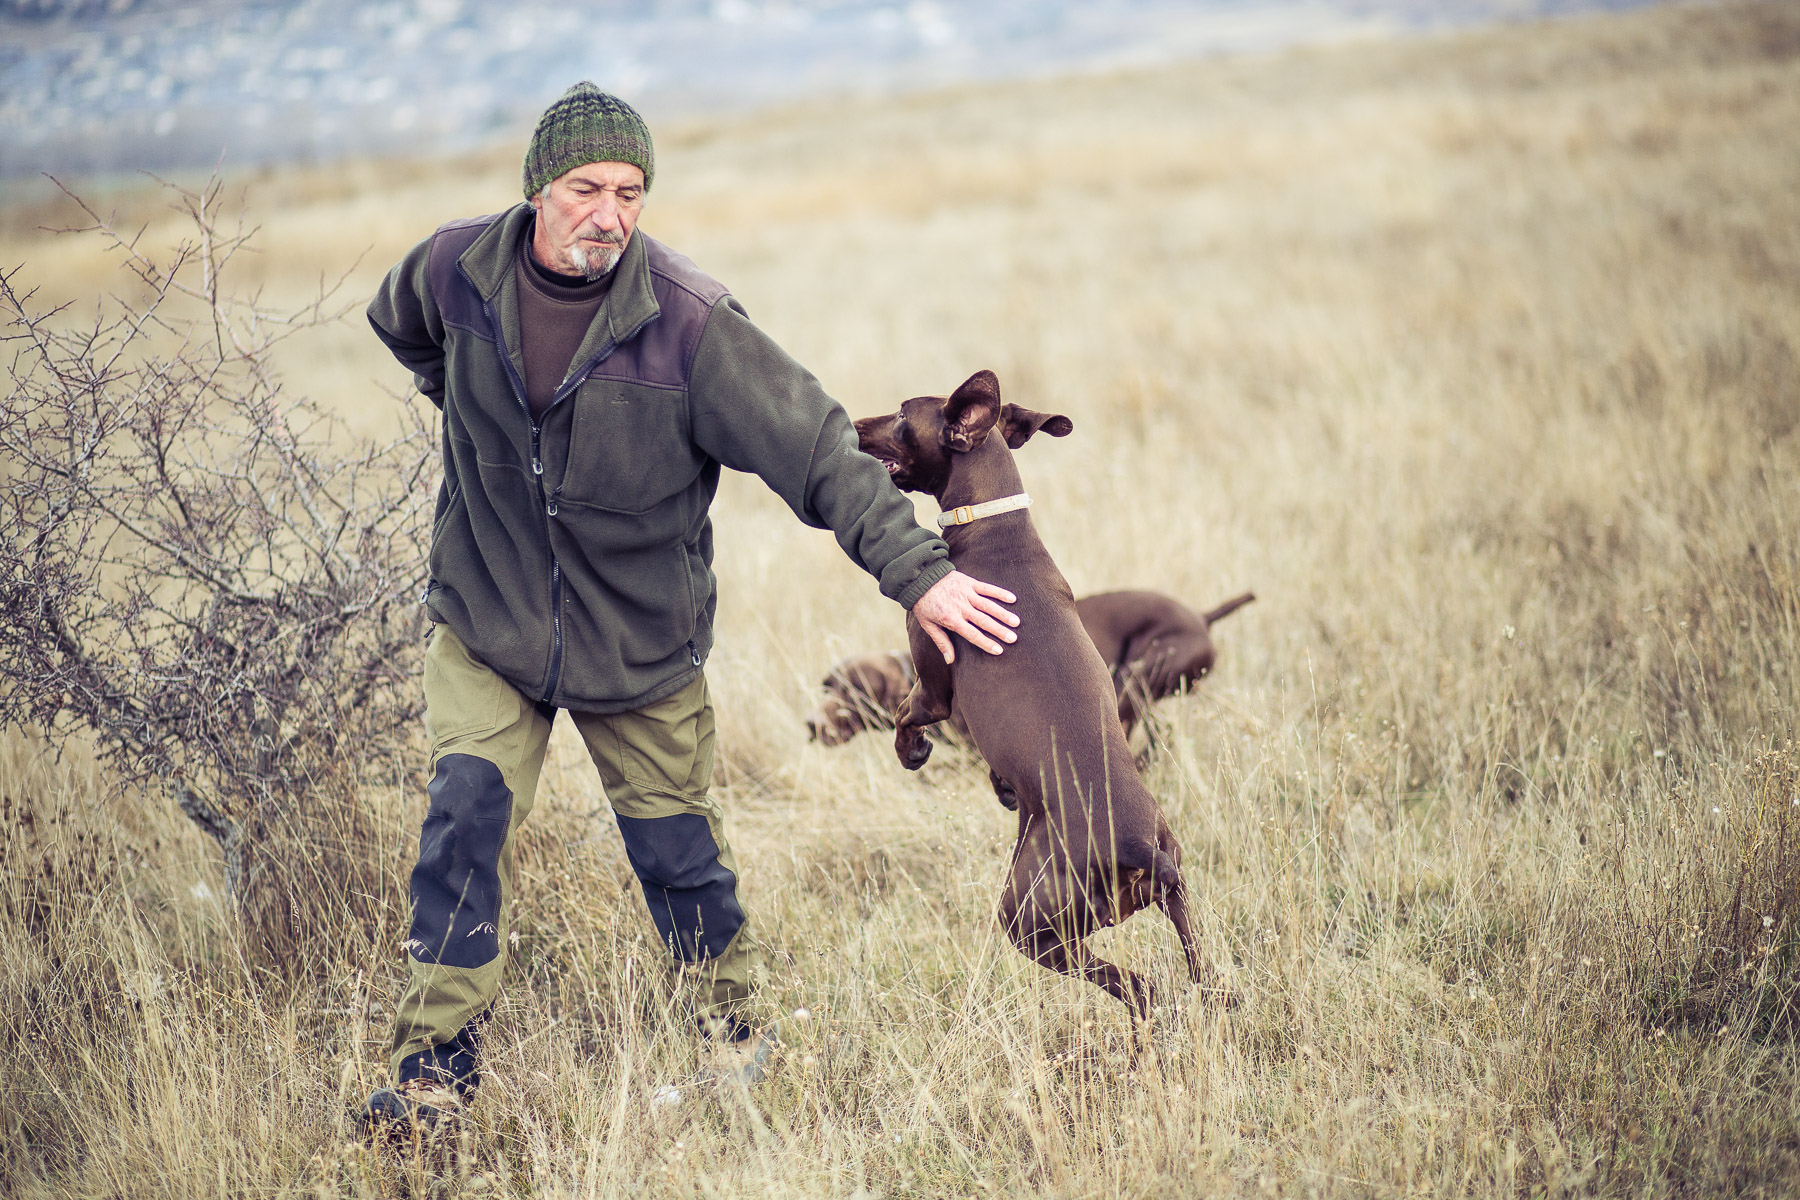 7dog-lifestyle-photographer-hunter-dogs-fetching-pheasants-nature-outdoors-bloodhounts-.jpg